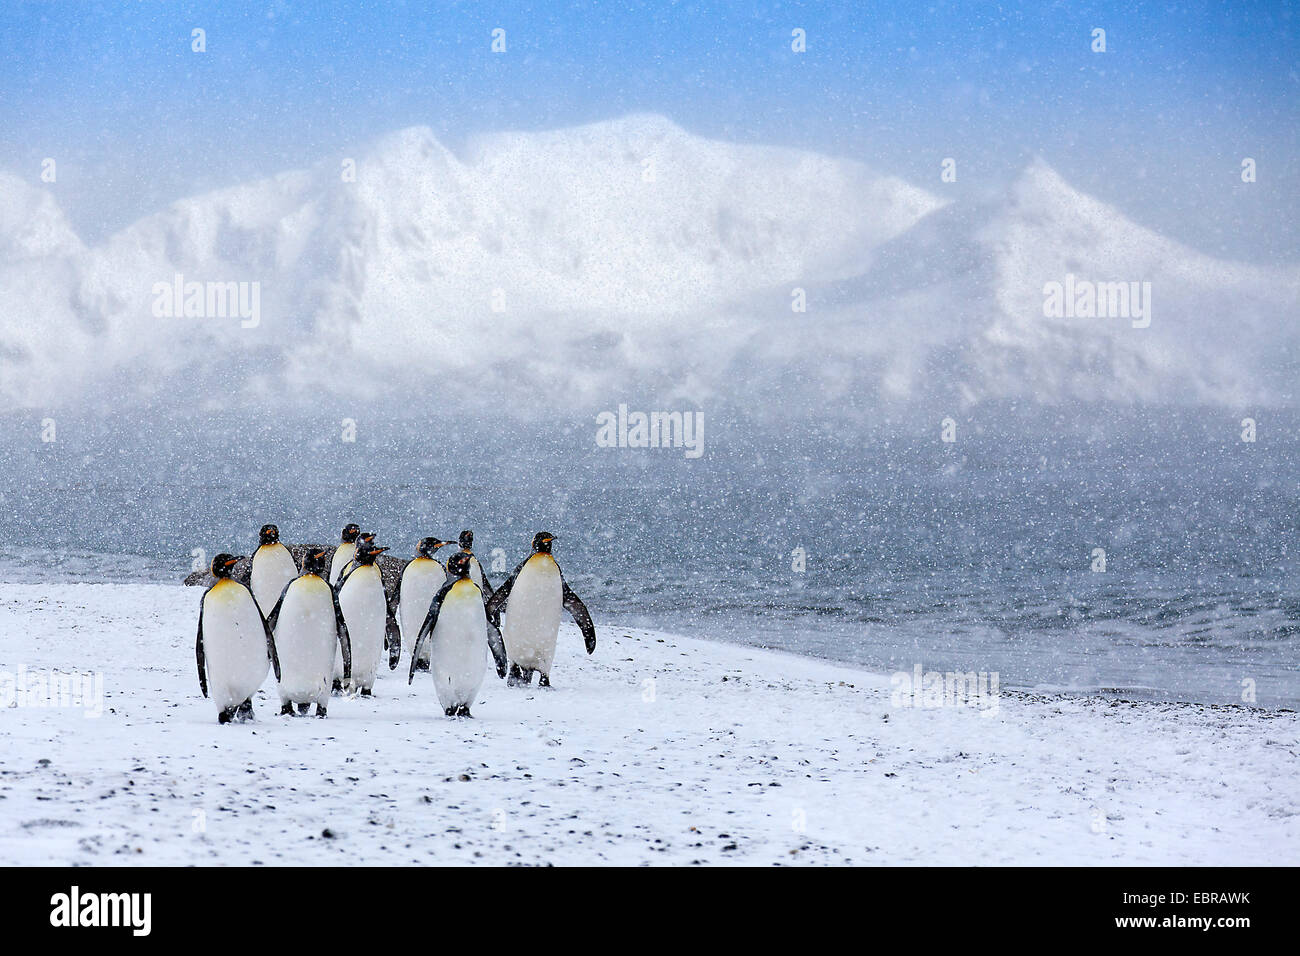 king penguin (Aptenodytes patagonicus), group in heavy snowfall, Antarctica, Suedgeorgien, St. Andrews Bay Stock Photo